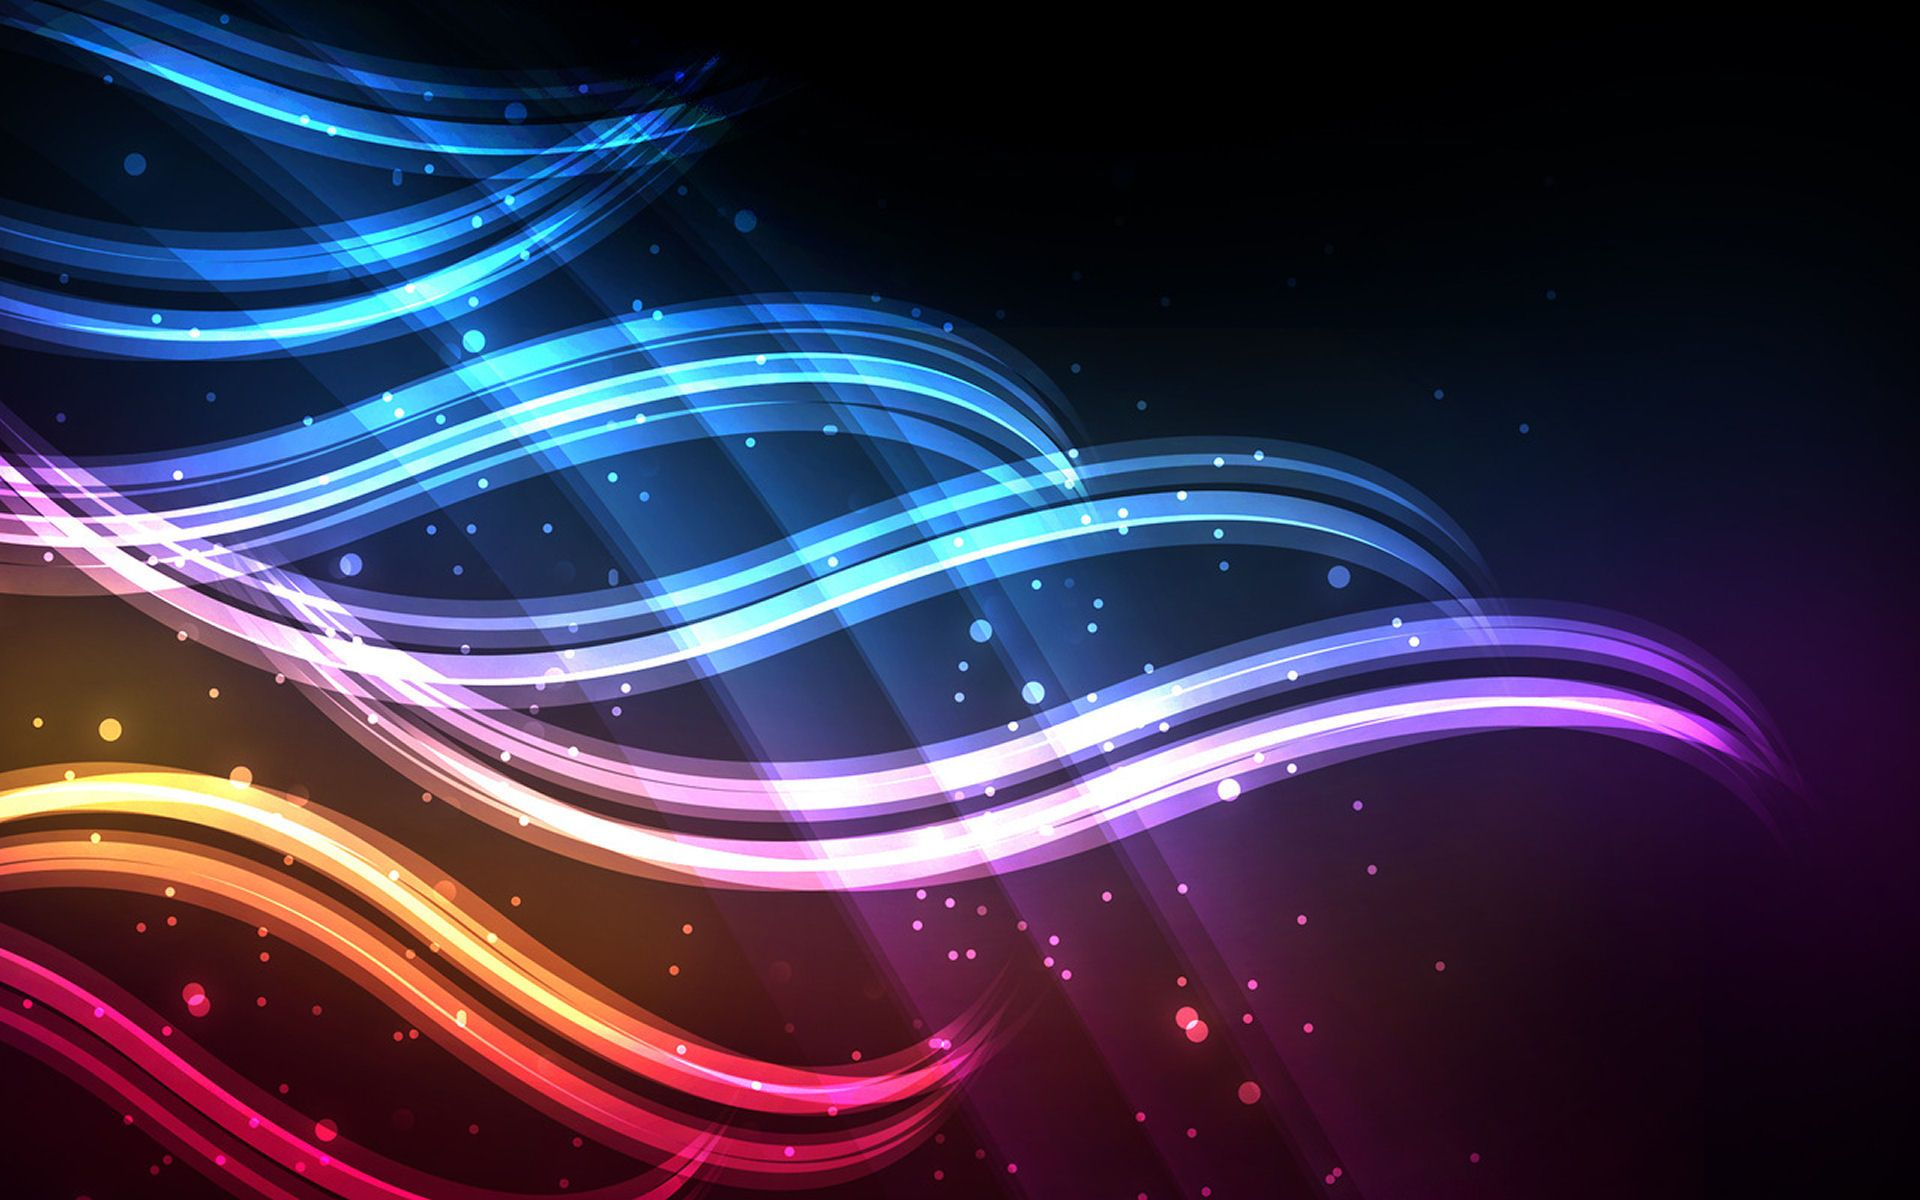 Pin By Emily Yvonne On Scrapbook Light Energy Abstract Wallpaper Colorful Backgrounds Waves Wallpaper Hd wallpaper abstract neon fractal waves